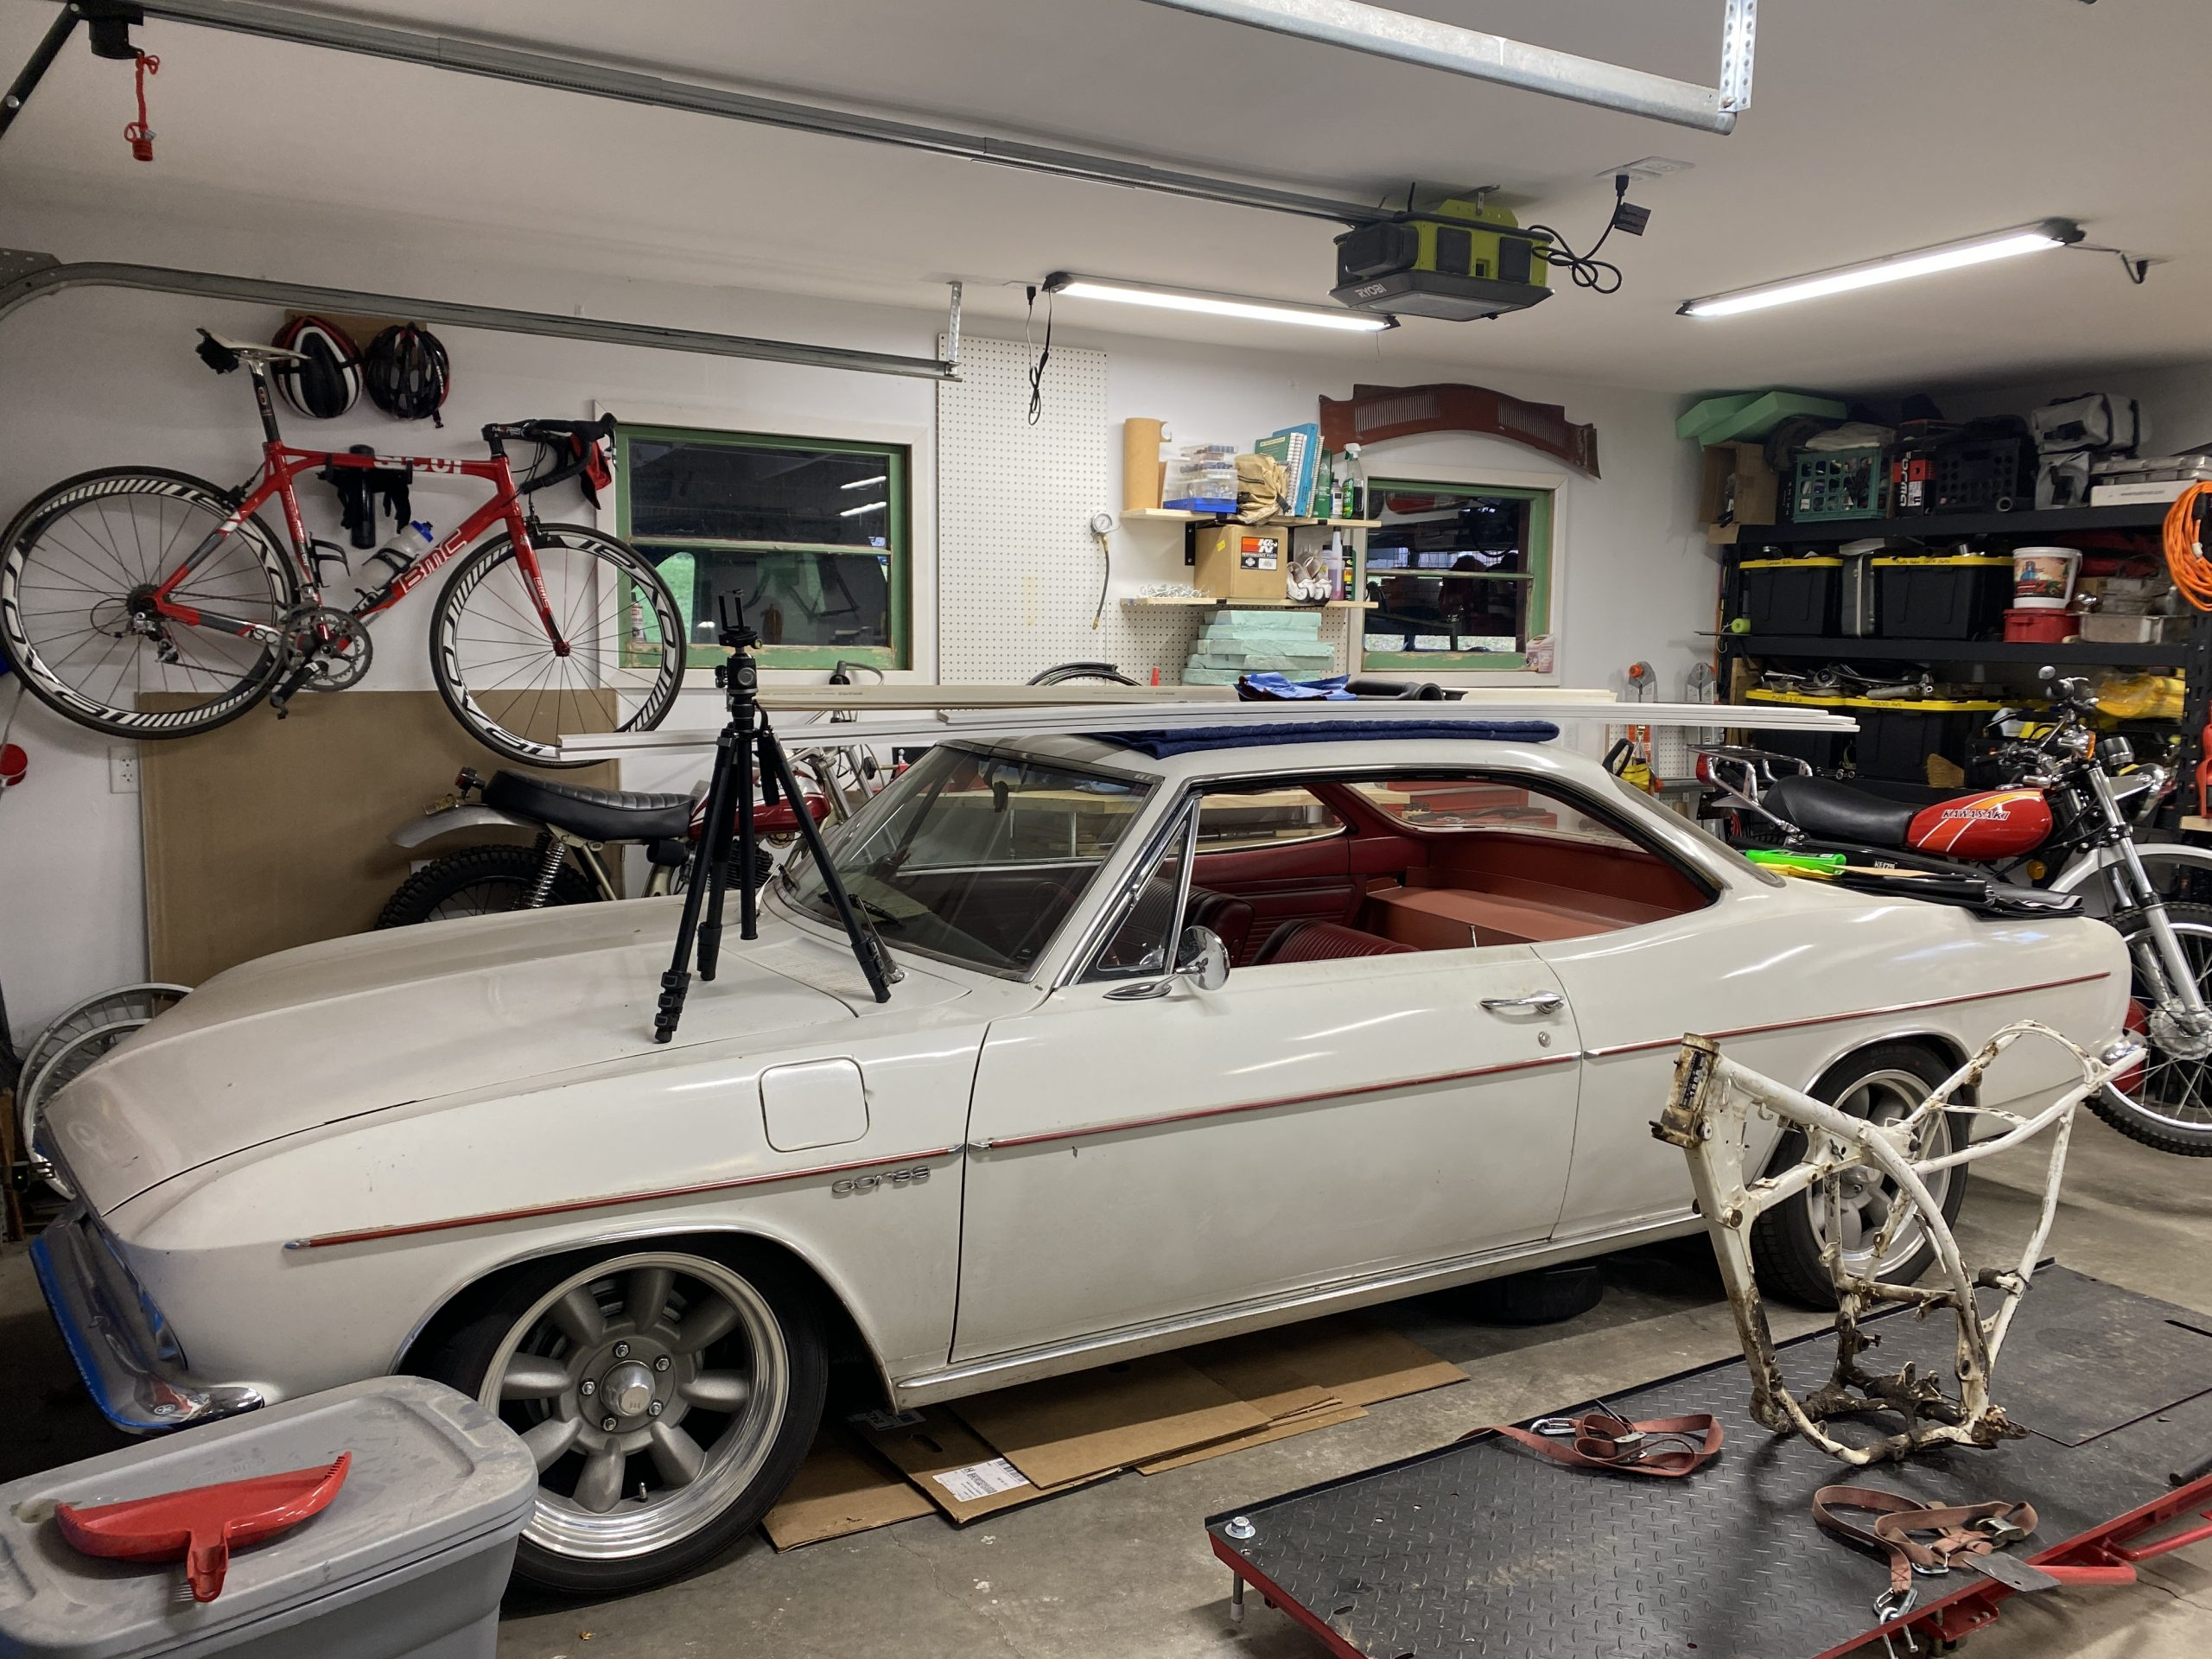 Corvair with items piled on